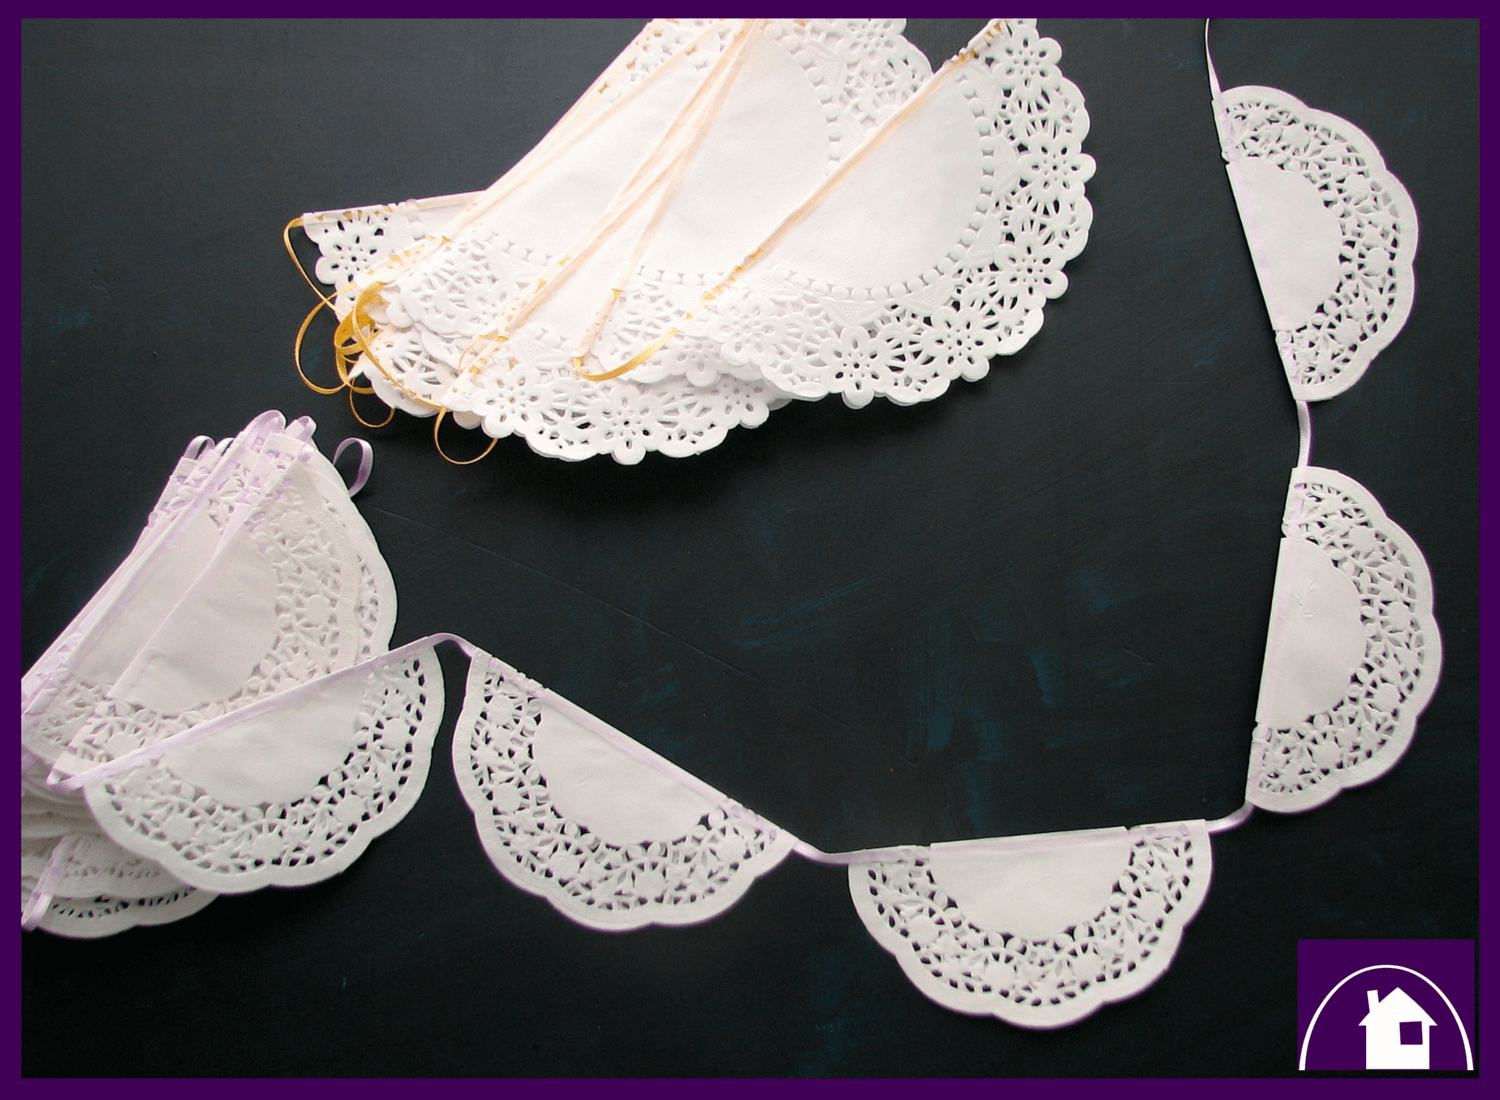 A super easy and fantastically fast DIY tutorial to make a whimsical paper doily garland